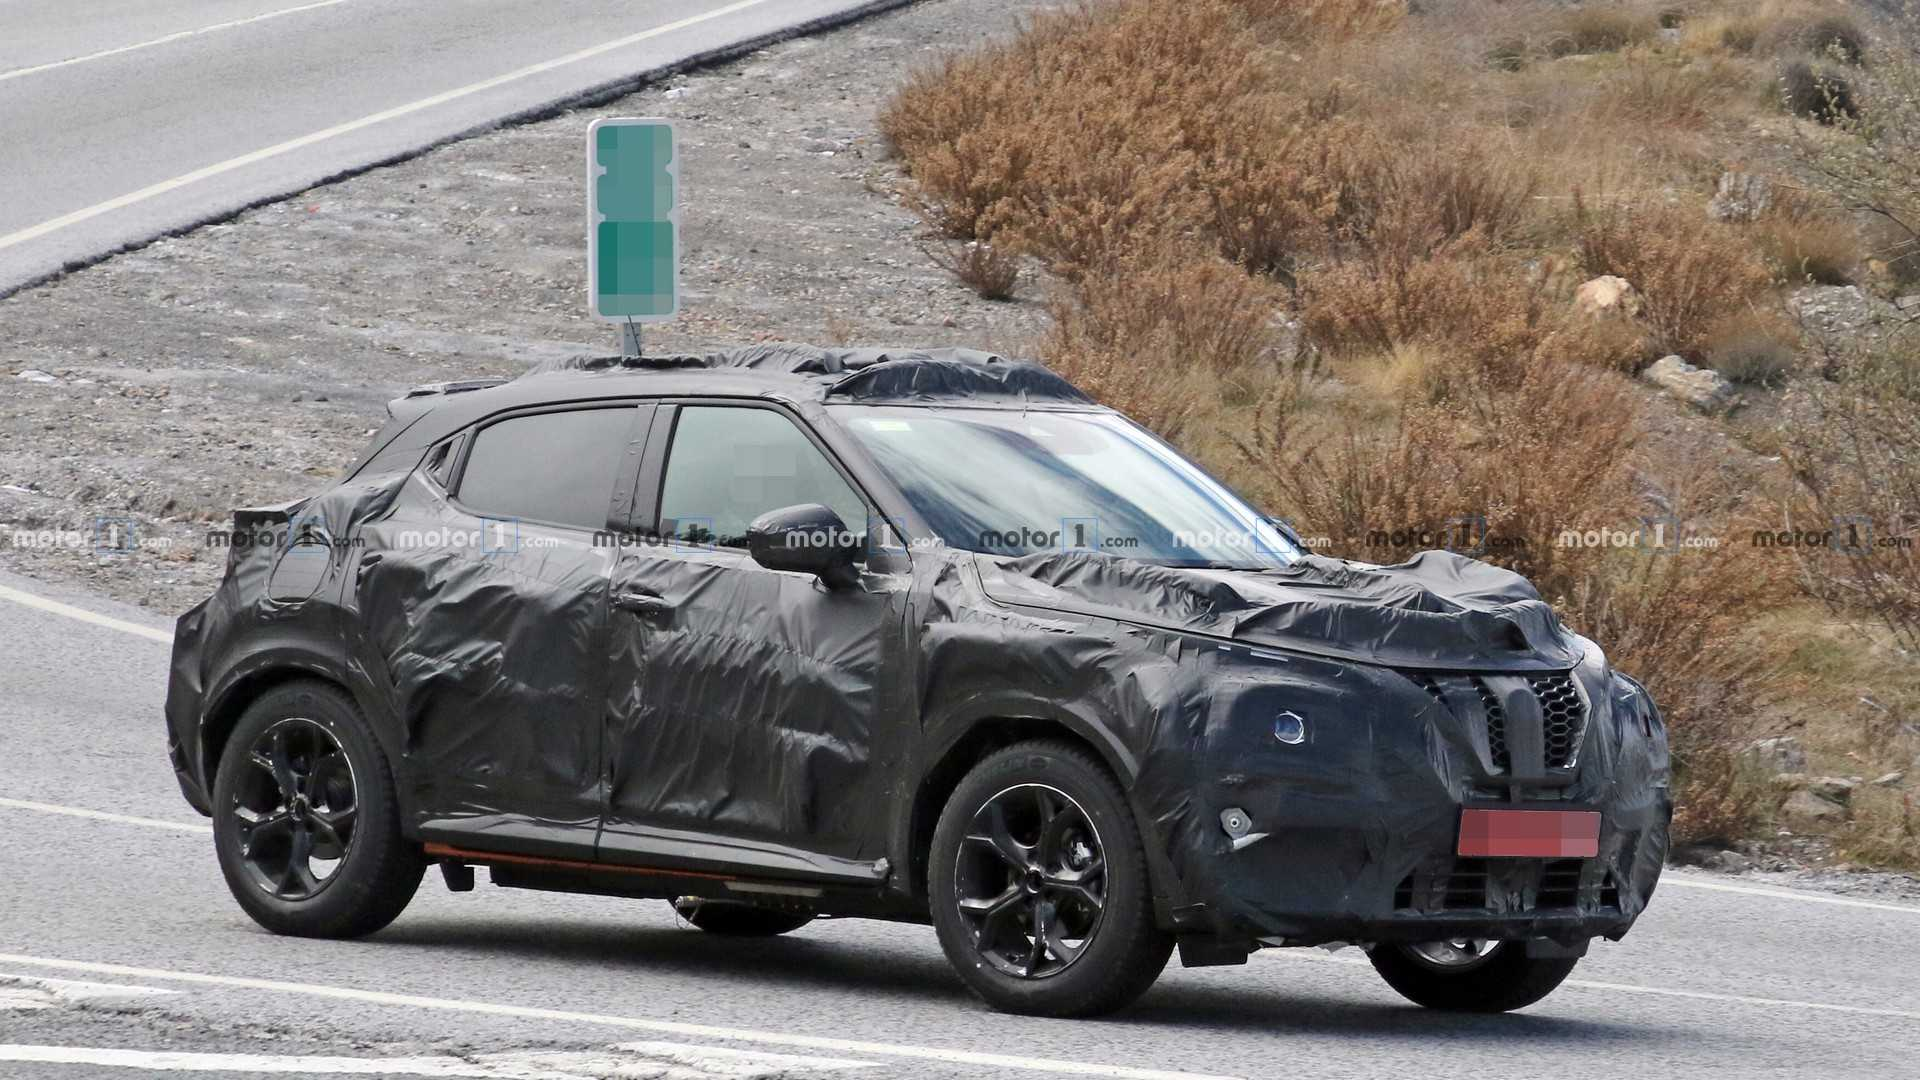 2020 Nissan Juke Spied With Camo Just As Funky As The Styling